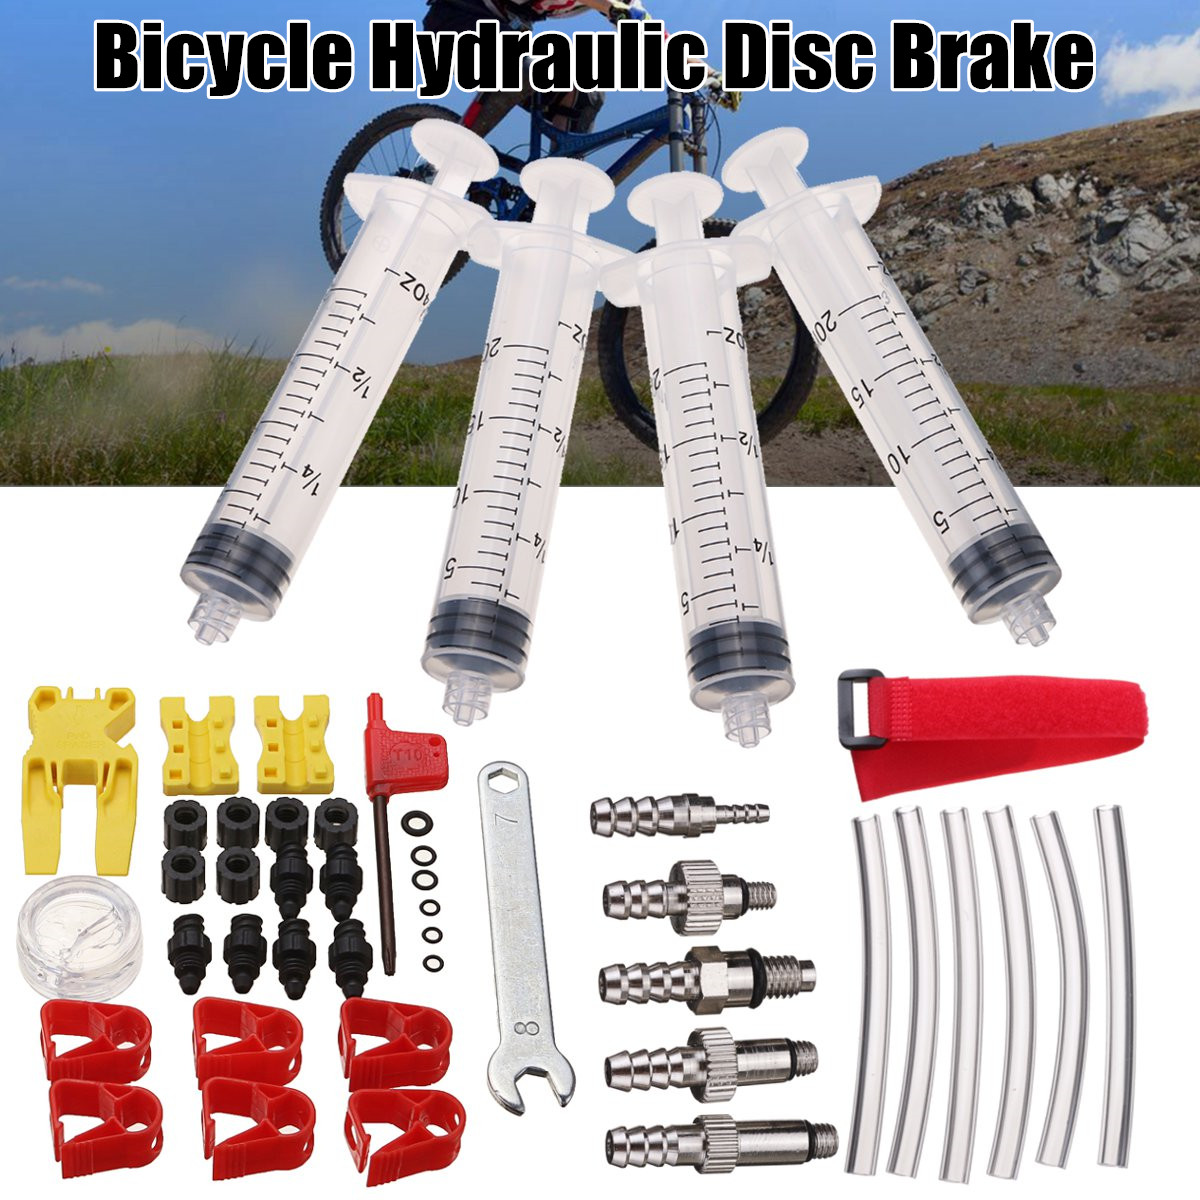 Bicycle hydraulic Disc Brake Bleed Kit tool For Shimano TEKTRO MAGURA ZOOM For AVID Formula DODE JUICY HAYES ELIXIR Bicycle велосипедные тормоза bicycle disc brake pads tektro io 2 dbp006